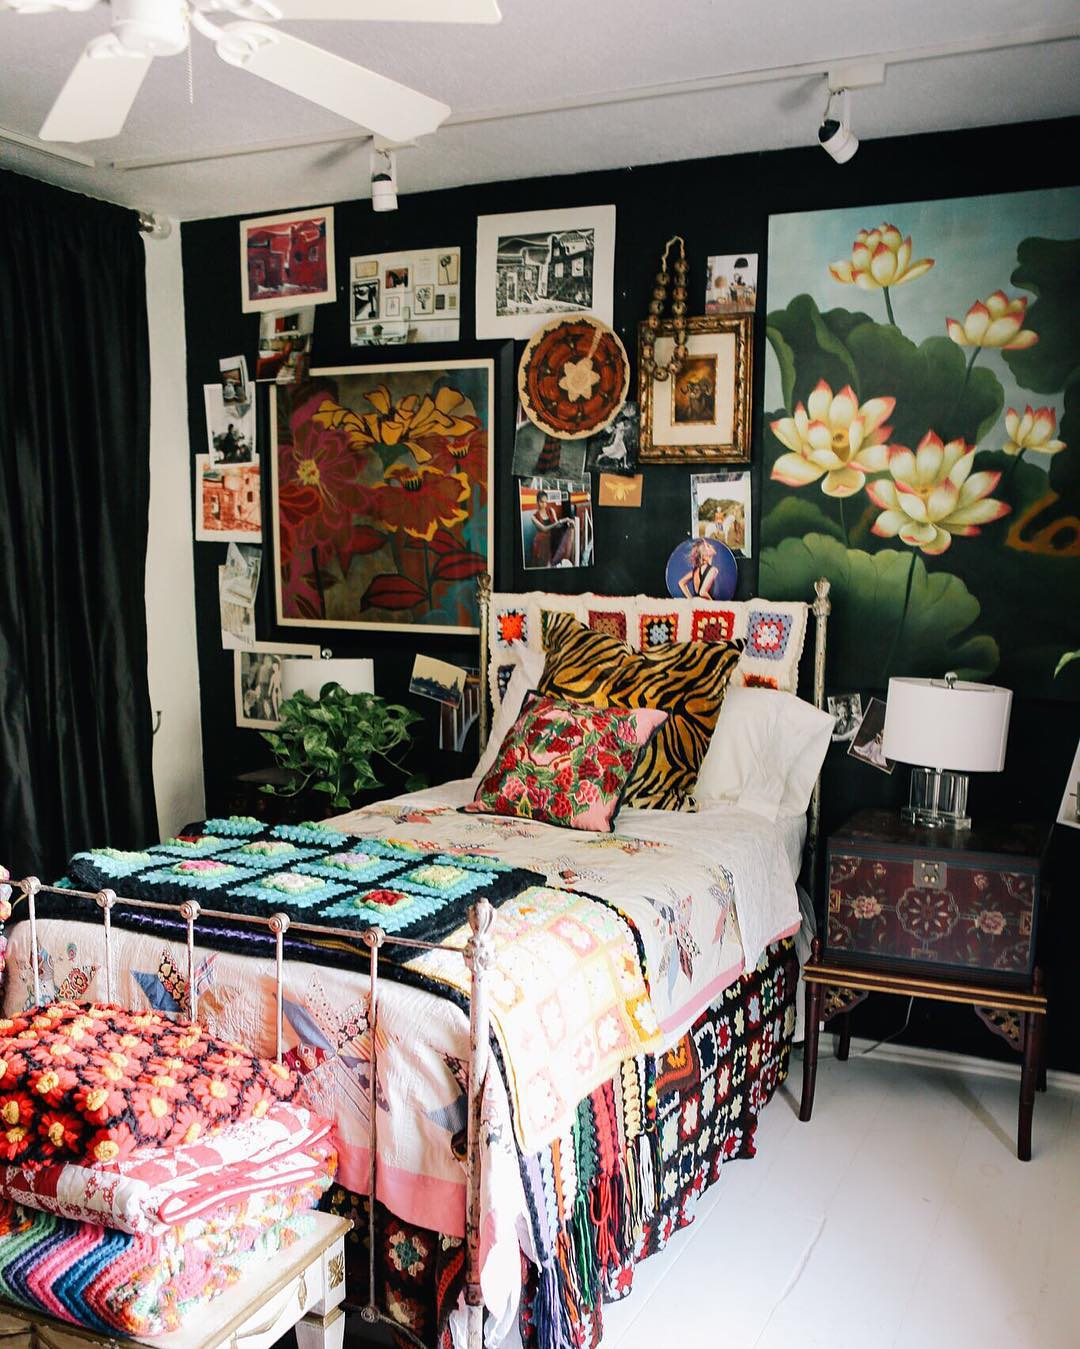 Hippie Boho Style Maximalist Interior Design:how To Do It In The Right Way?